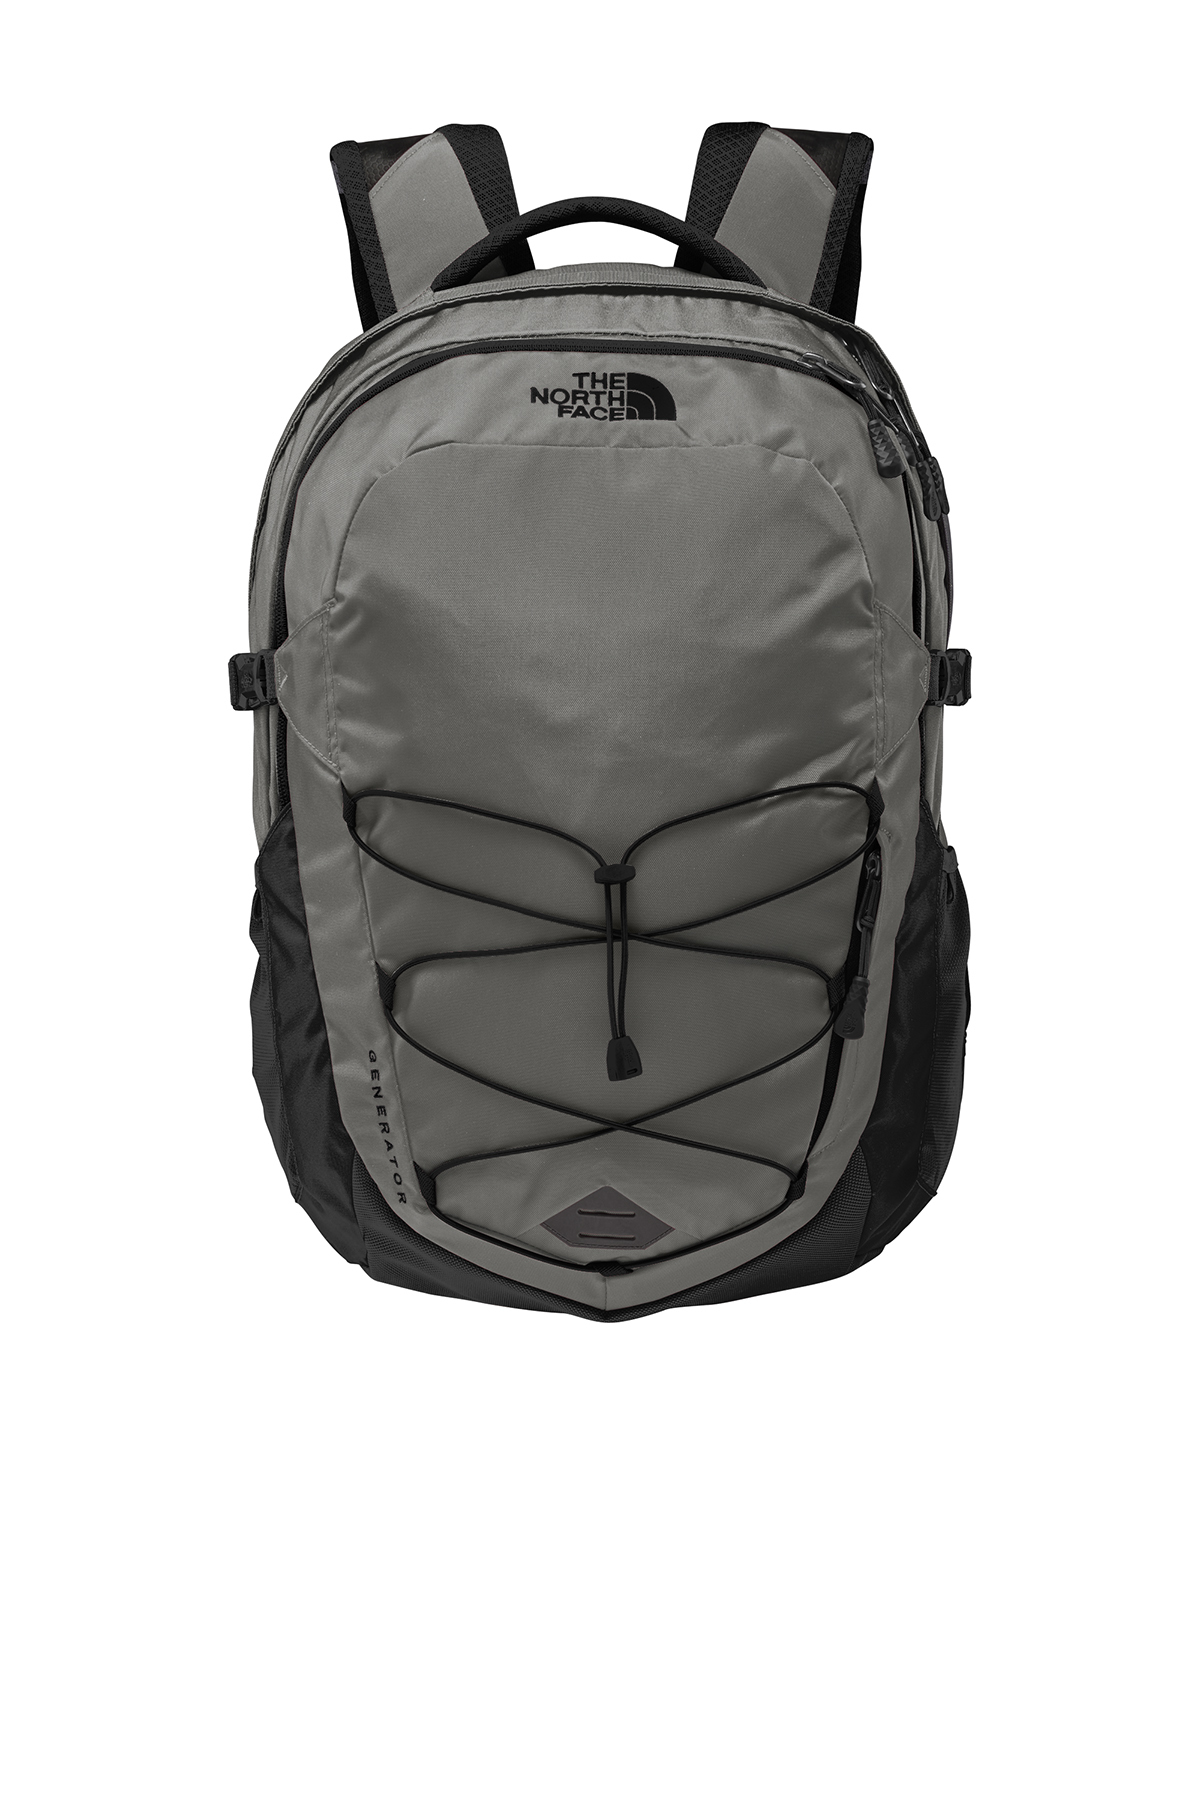 The North Face NF0A3KX5 - Generator Backpack